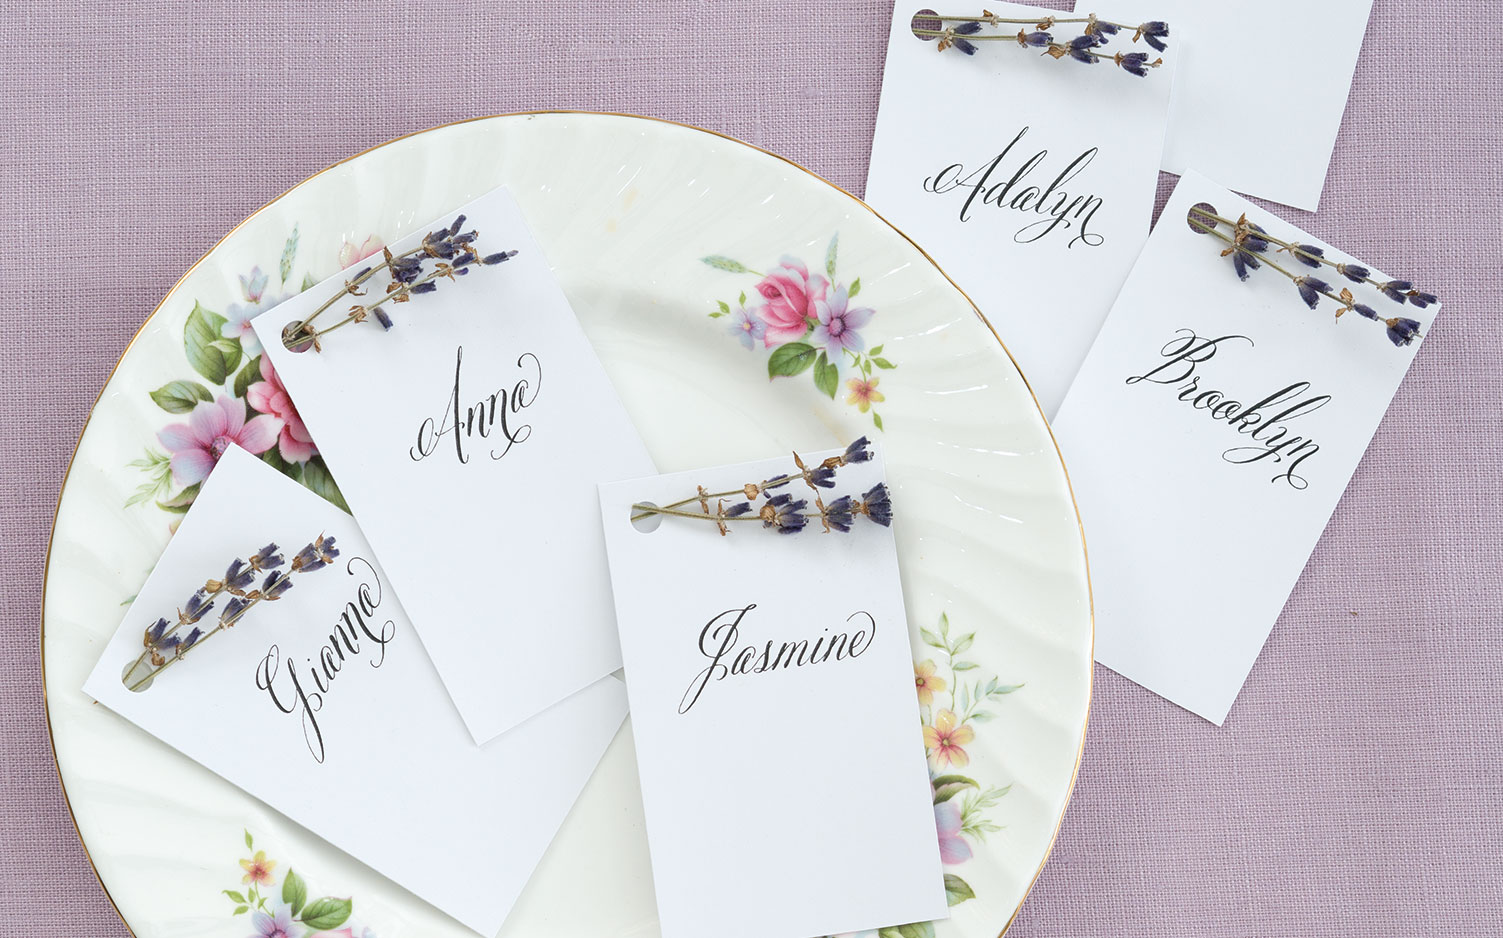 Spring entertaining ideas, lavender place cards